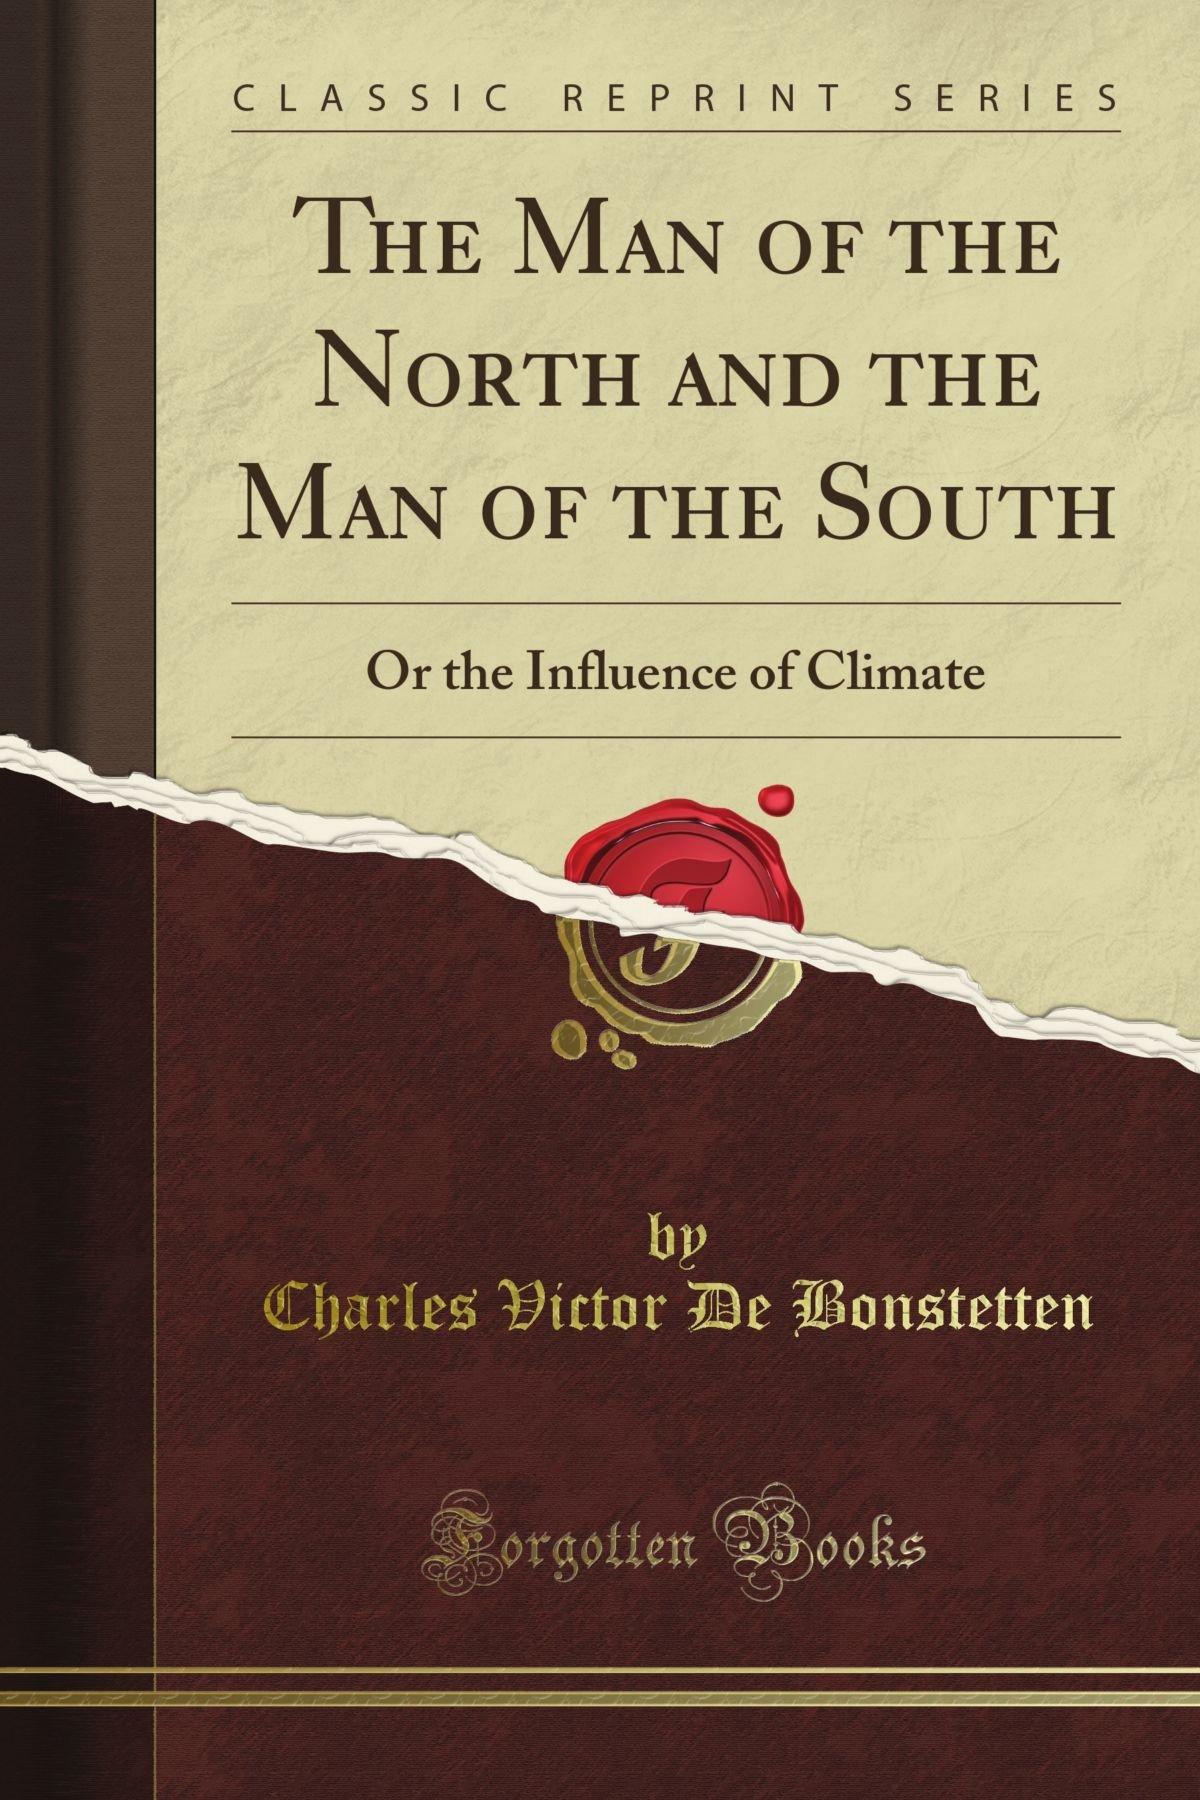 The Man of the North and the Man of the South: Or the Influence of Climate (Classic Reprint) PDF